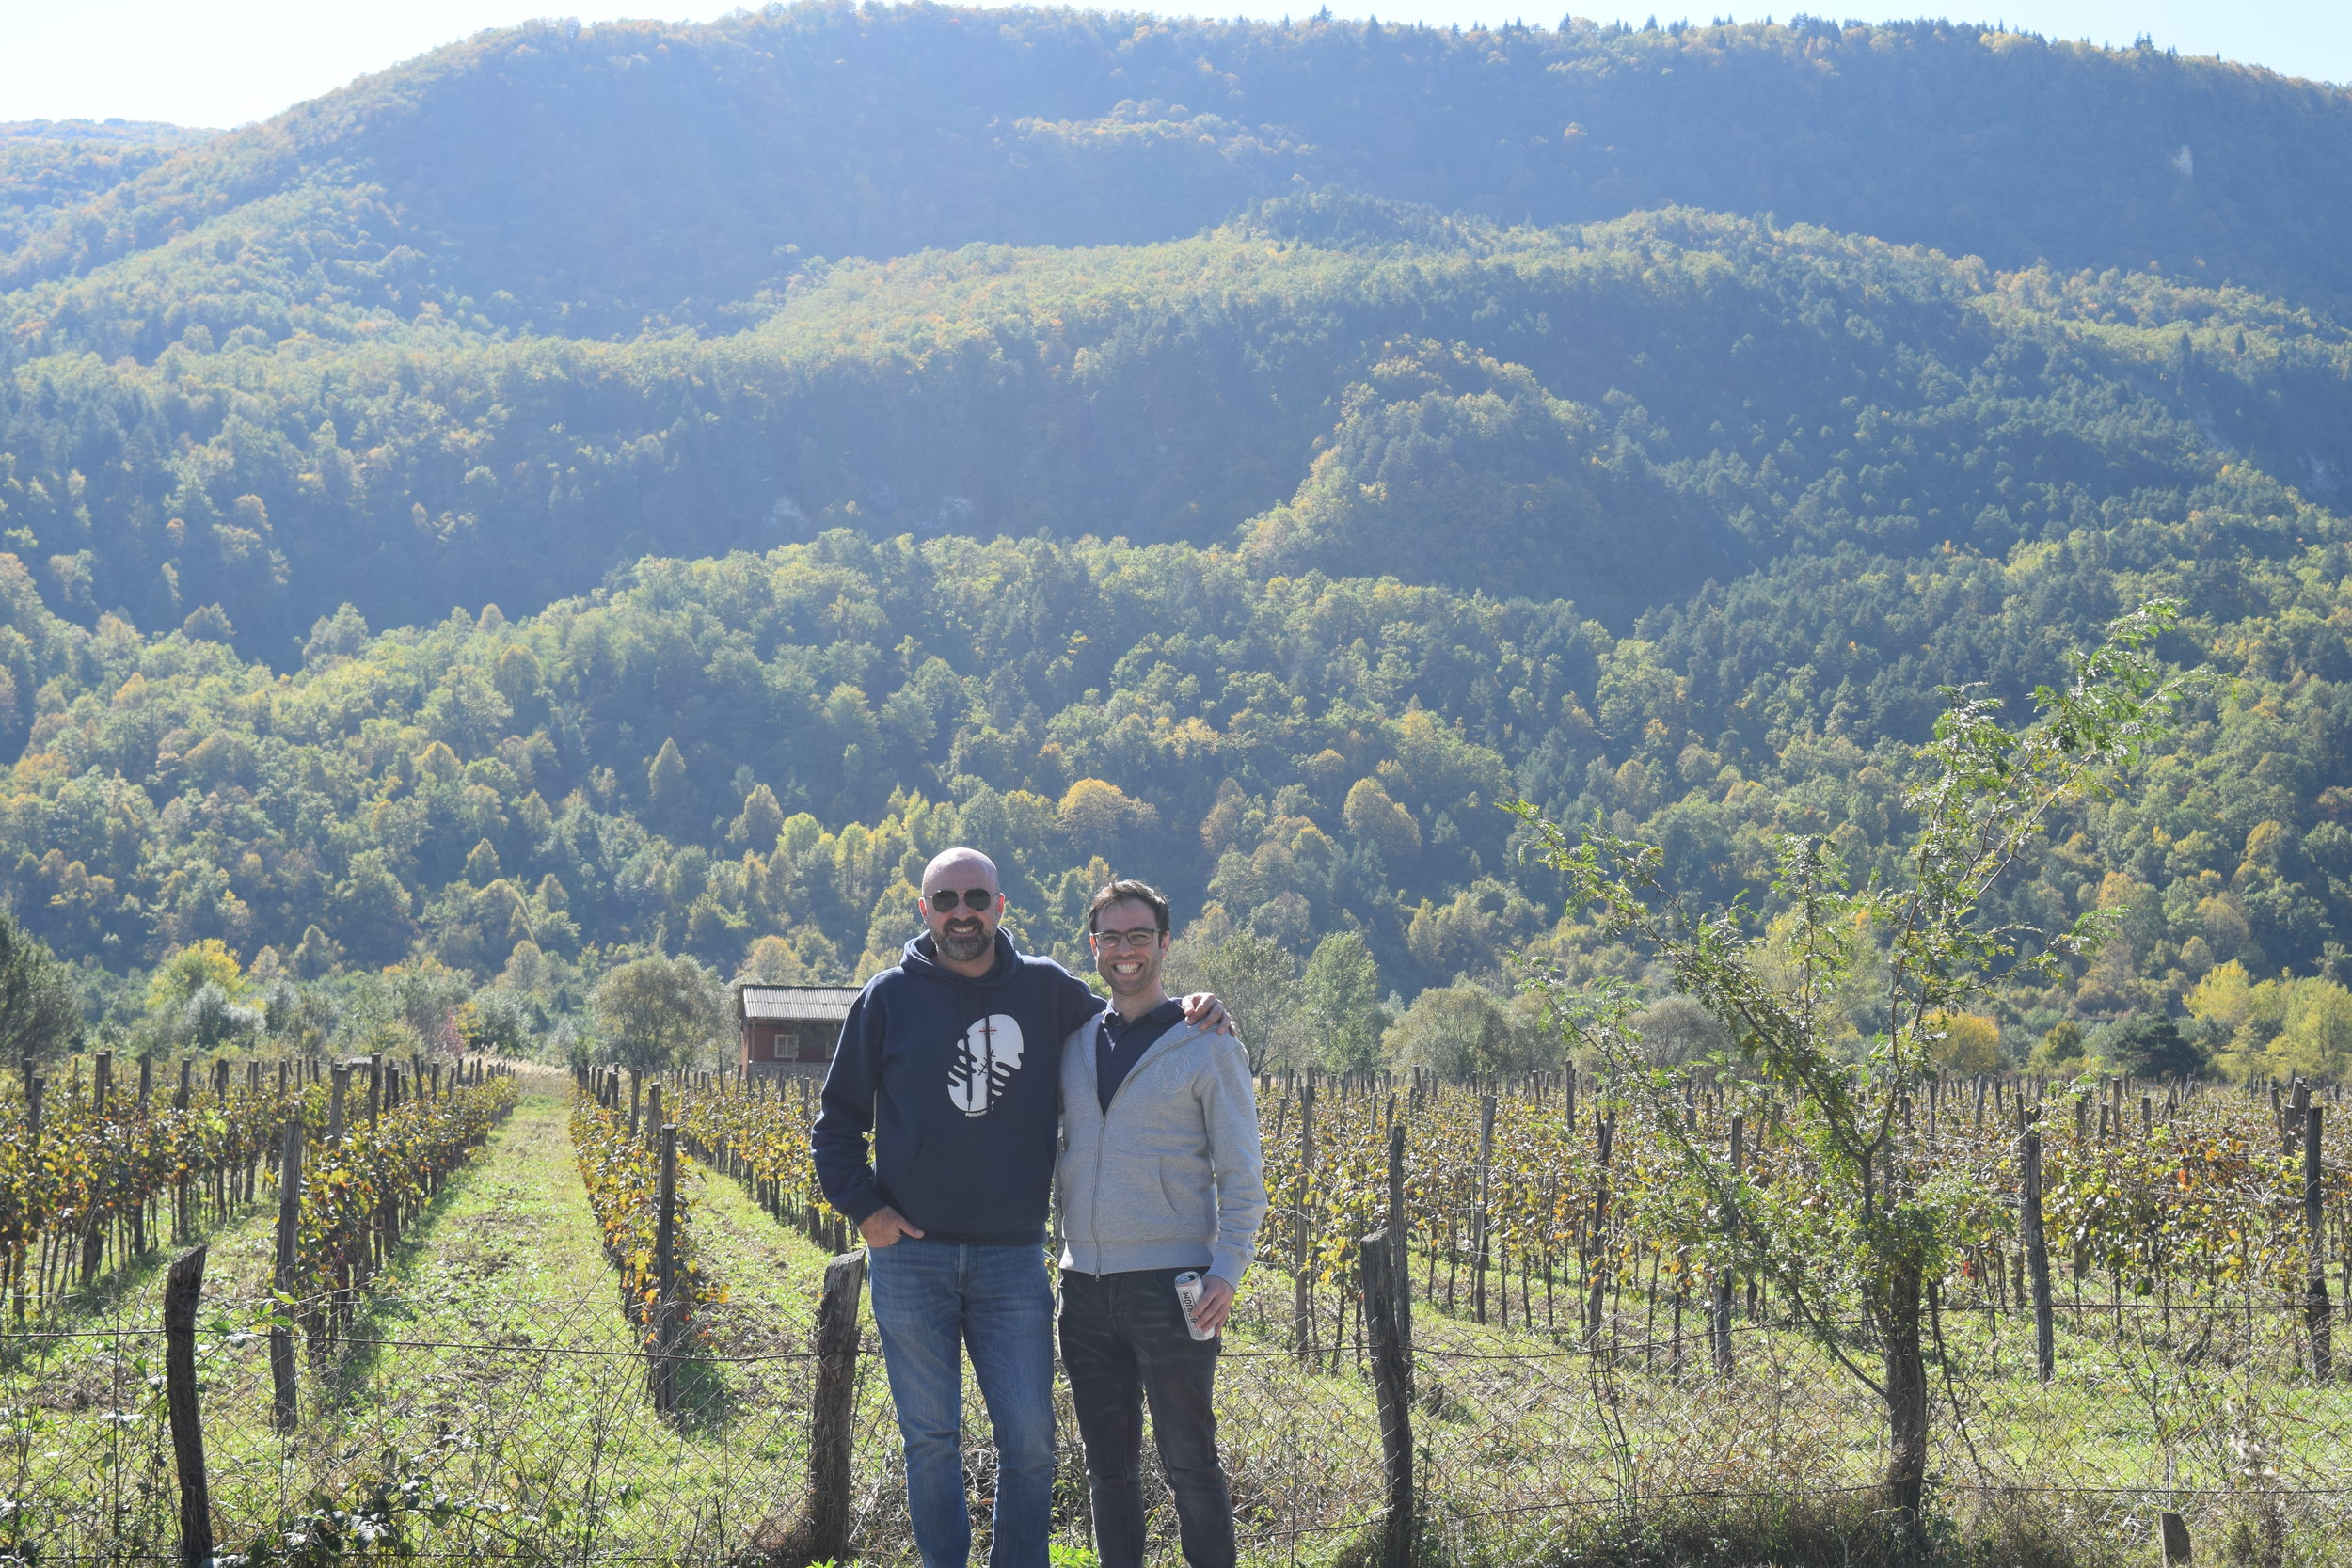 The two founders posing for a photograph in a vineyard in Racha Georgia, where Royal Khvanchkara wine is made